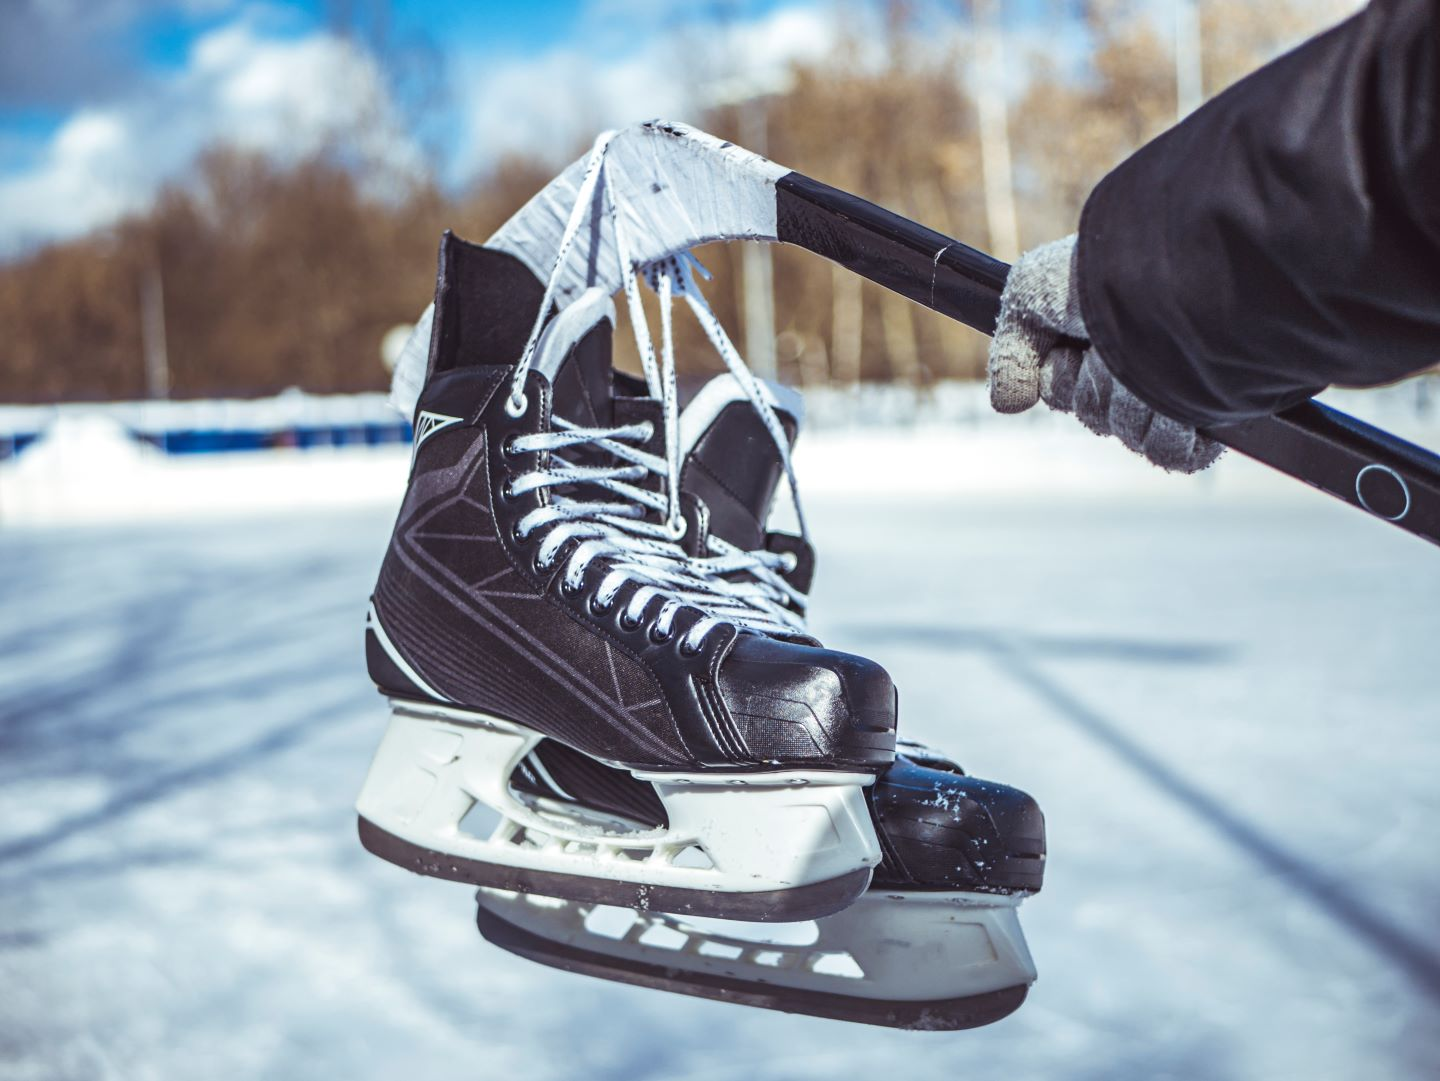 image of hockey stick and ice skates